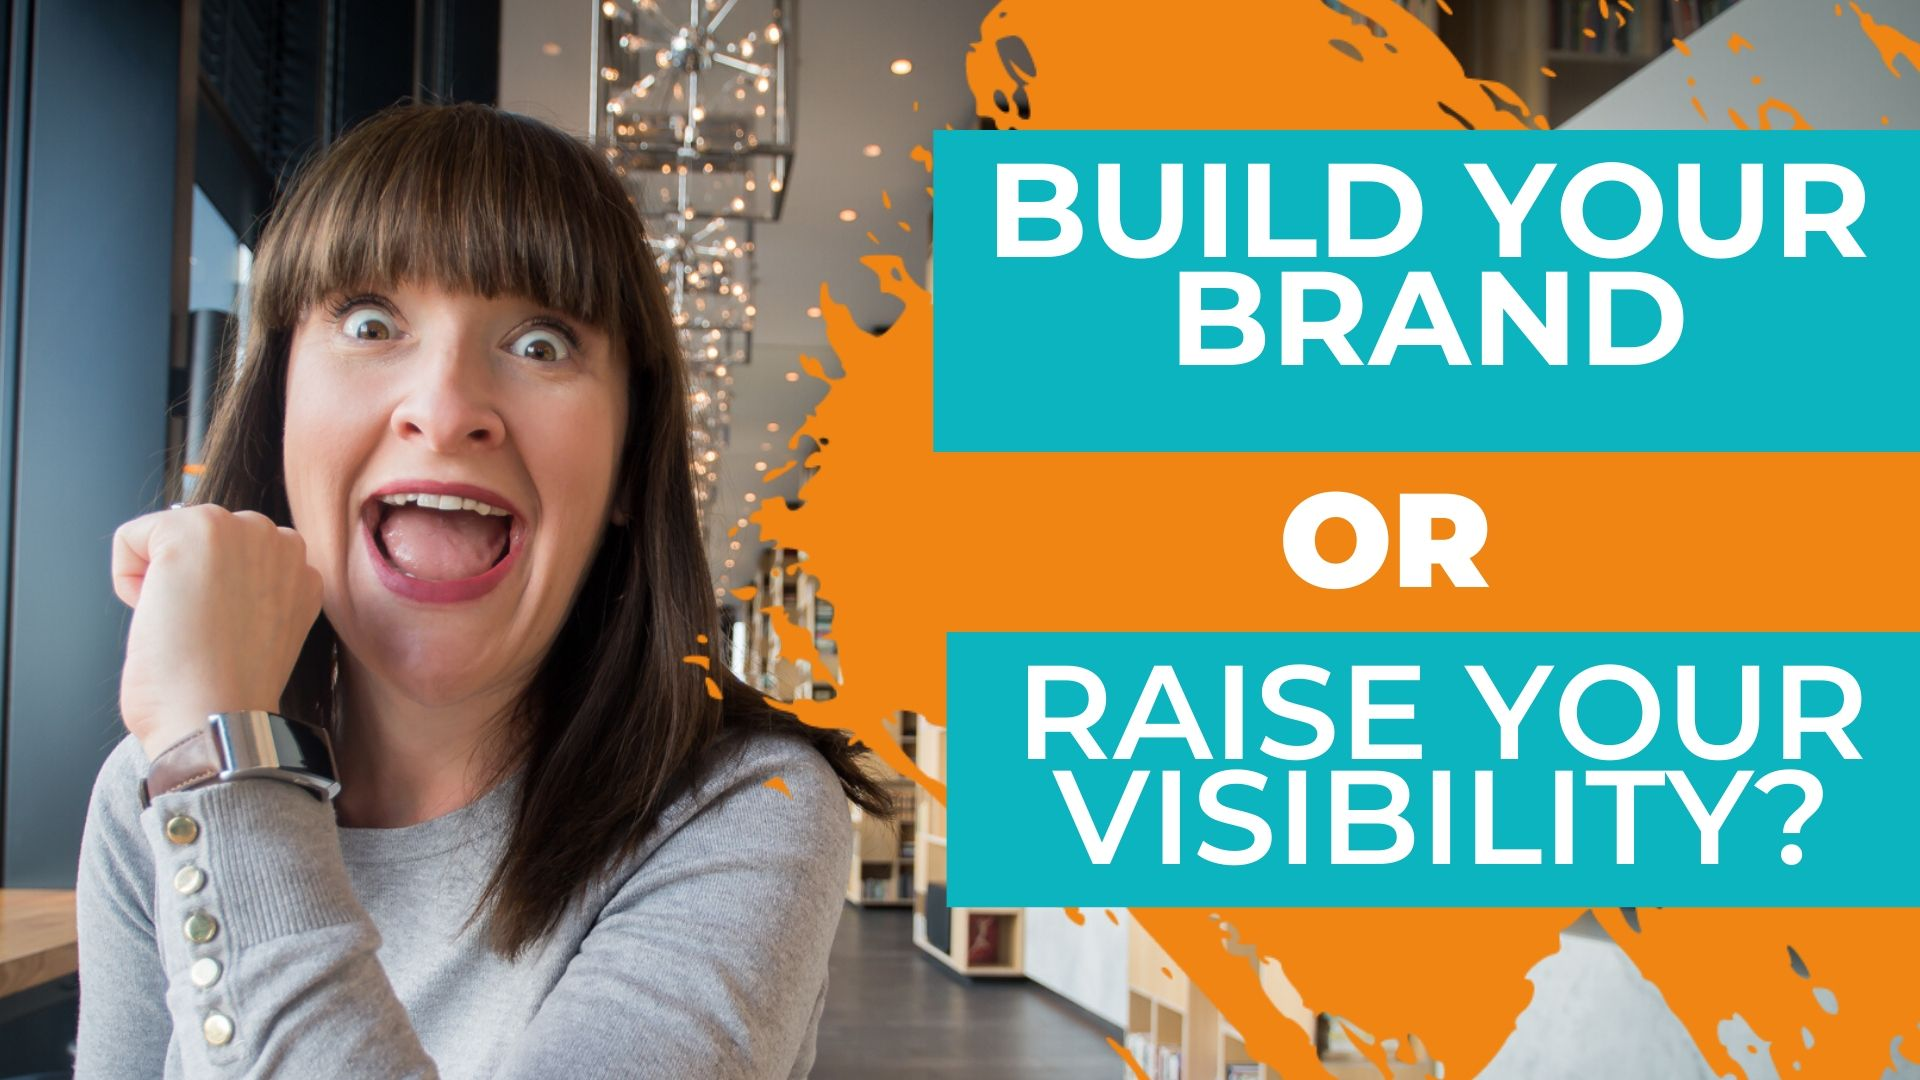 Janine Coombes looking excited about branding building or visibility raising